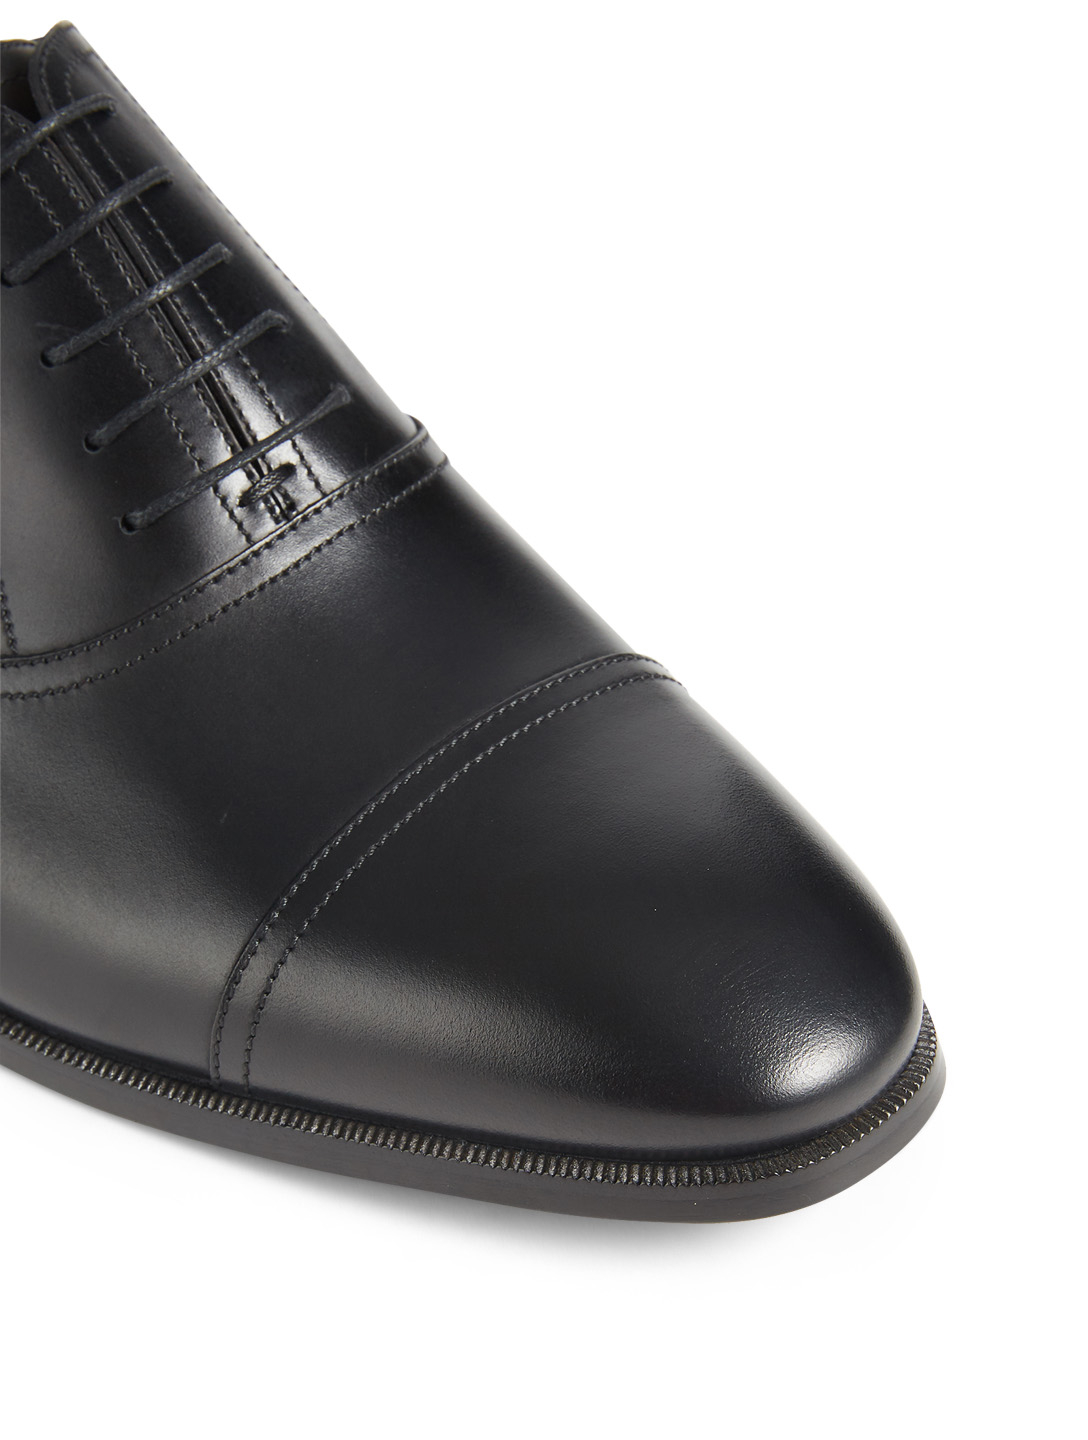 GUCCI Leather Derby Shoes Designers Black